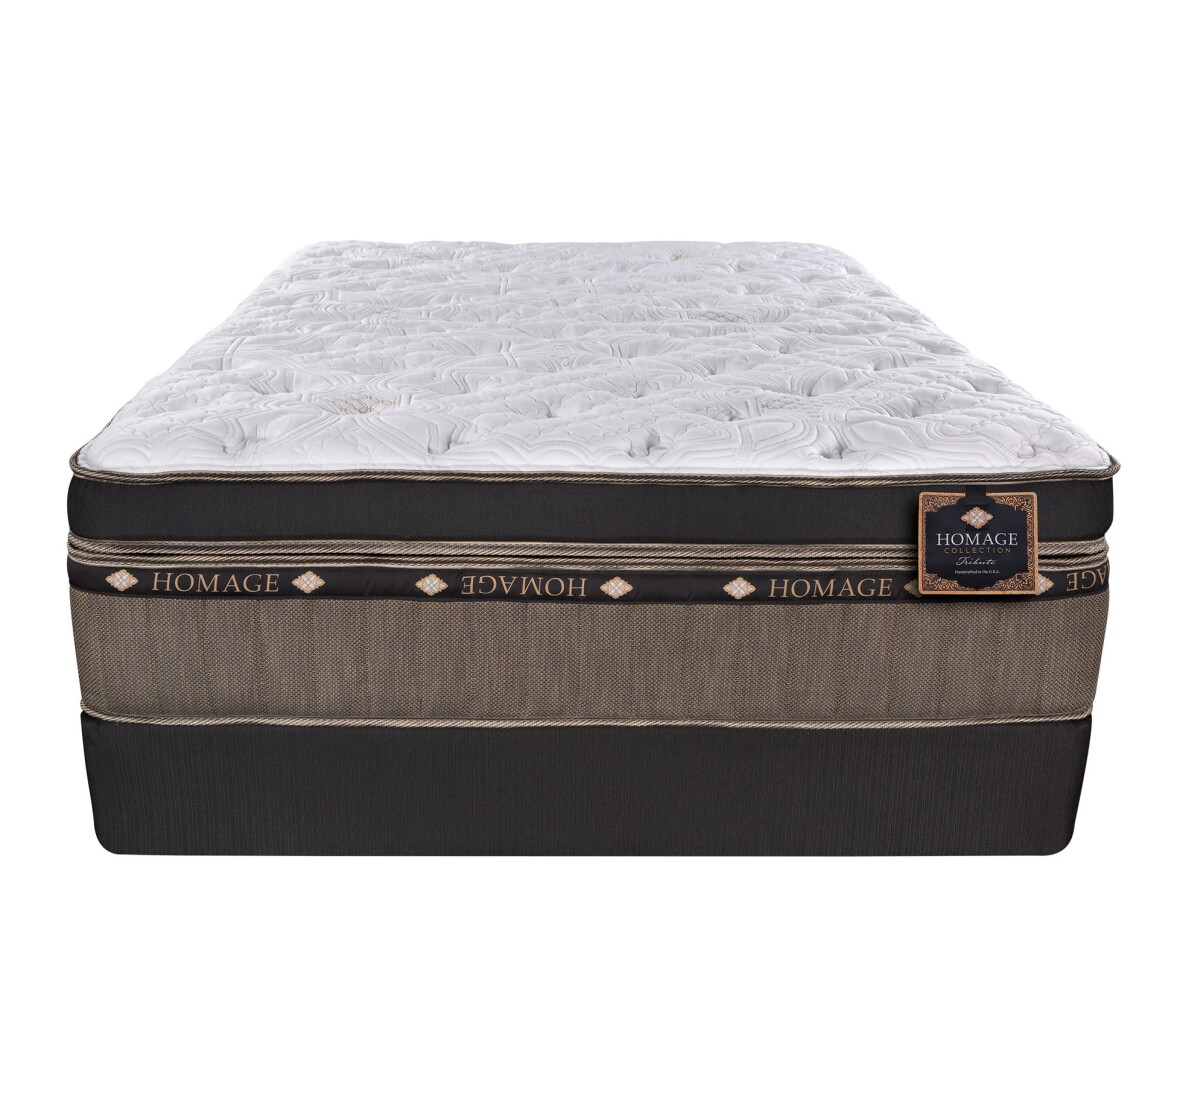 127077_Homage_Tribute Boxtop Mattress  (2).jpg